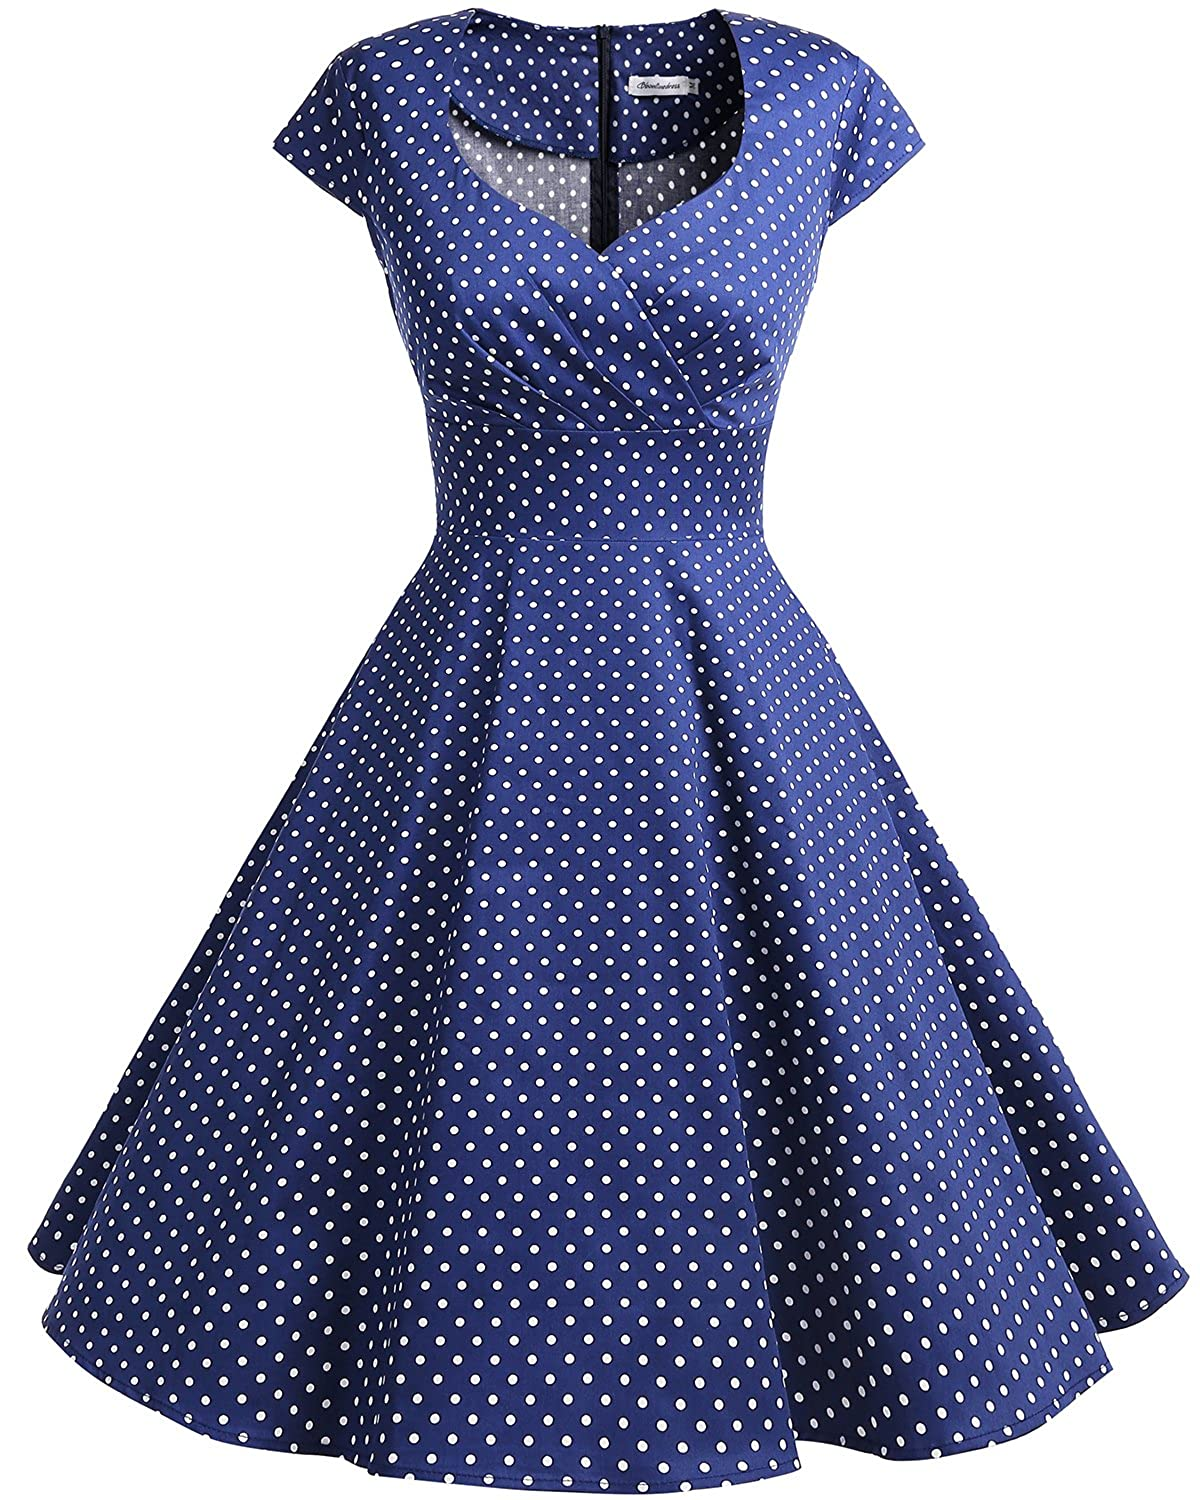 TALLA 3XL. Bbonlinedress Vestido Corto Mujer Retro A?os 50 Vintage Escote En Pico Navy Small White Dot 3XL